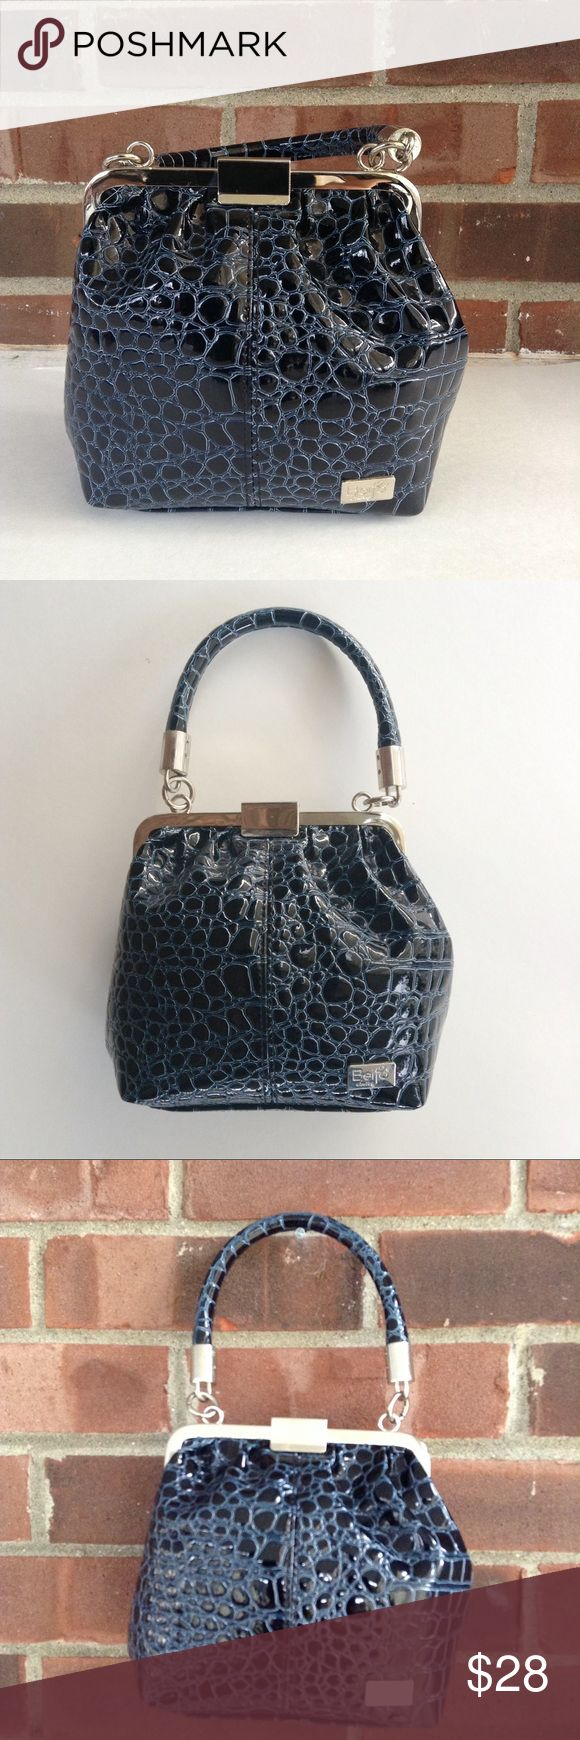 NWOT Beijo black and blue croc embossed skin purse New without tag beautiful faux crocodile embossed handbag. It has four feet to stand it up and a clip claps closure on top. Single strap handle. Smoke and pet free home, fast shipping. beijo Bags Mini Bags